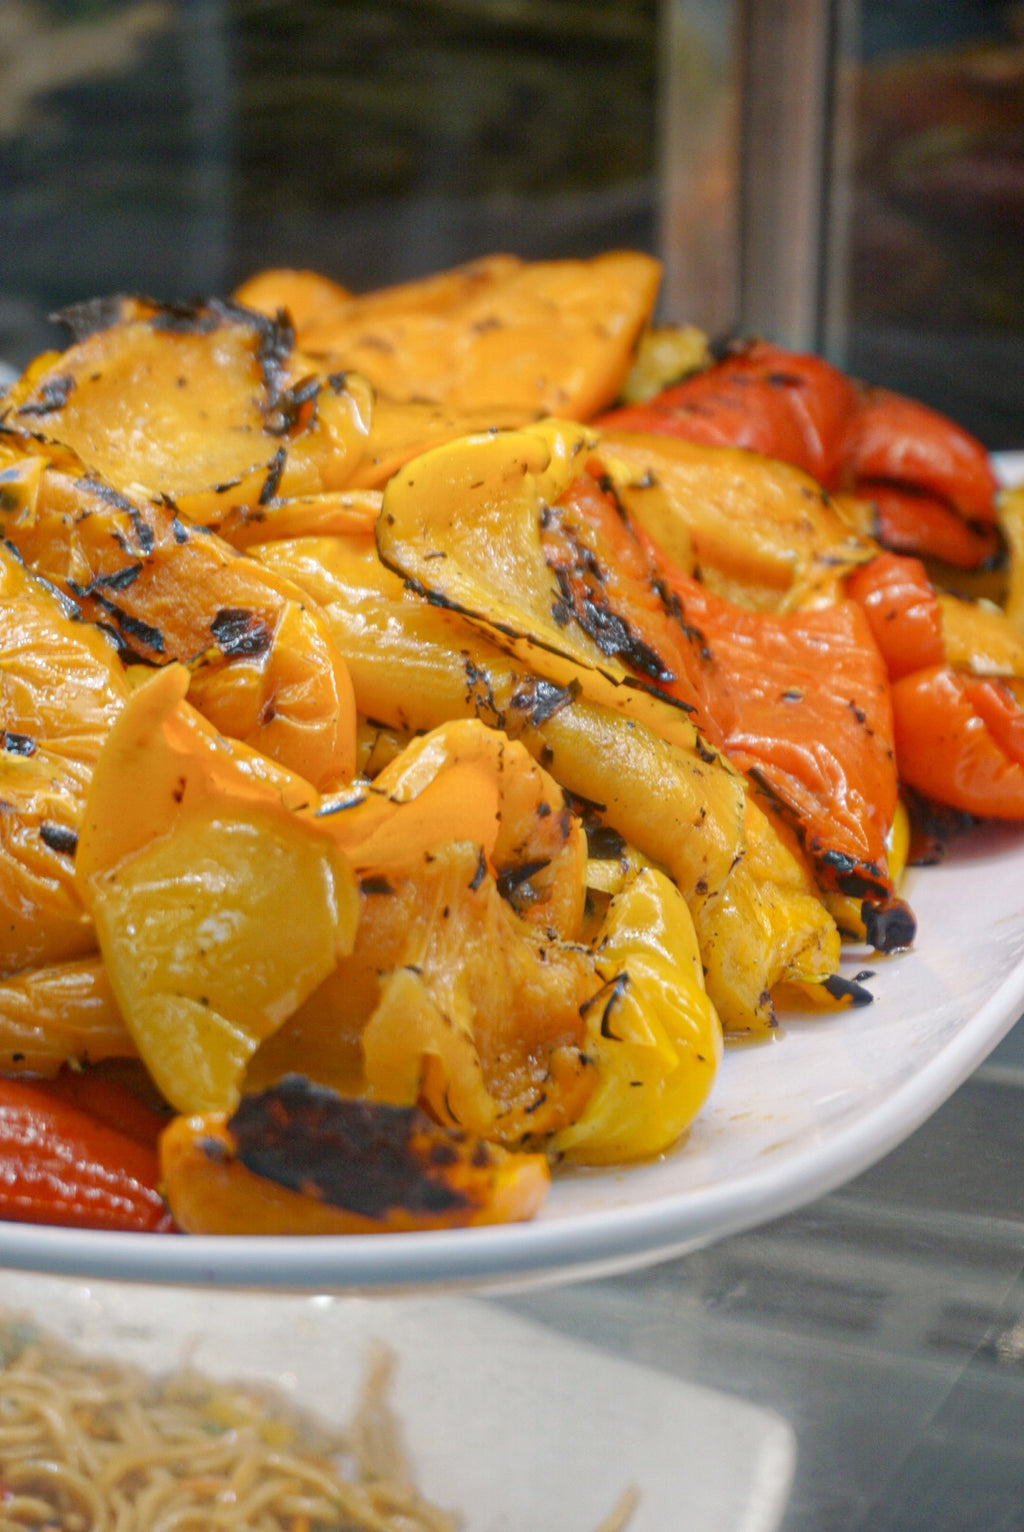 Grilled Vegetables - Delivery